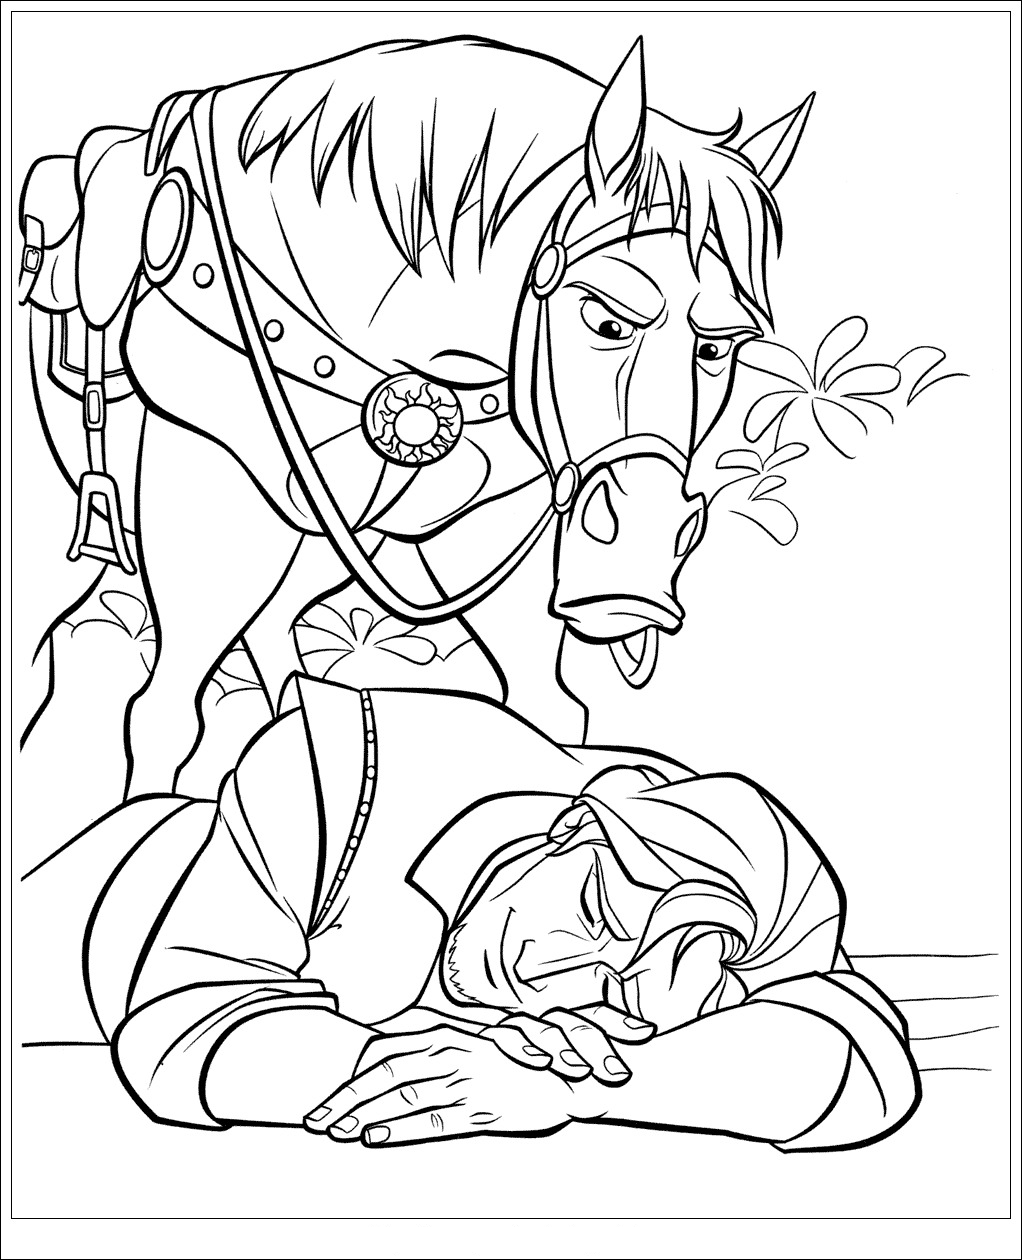 Tangled to color for kids - Tangled Kids Coloring Pages | 1260x1022